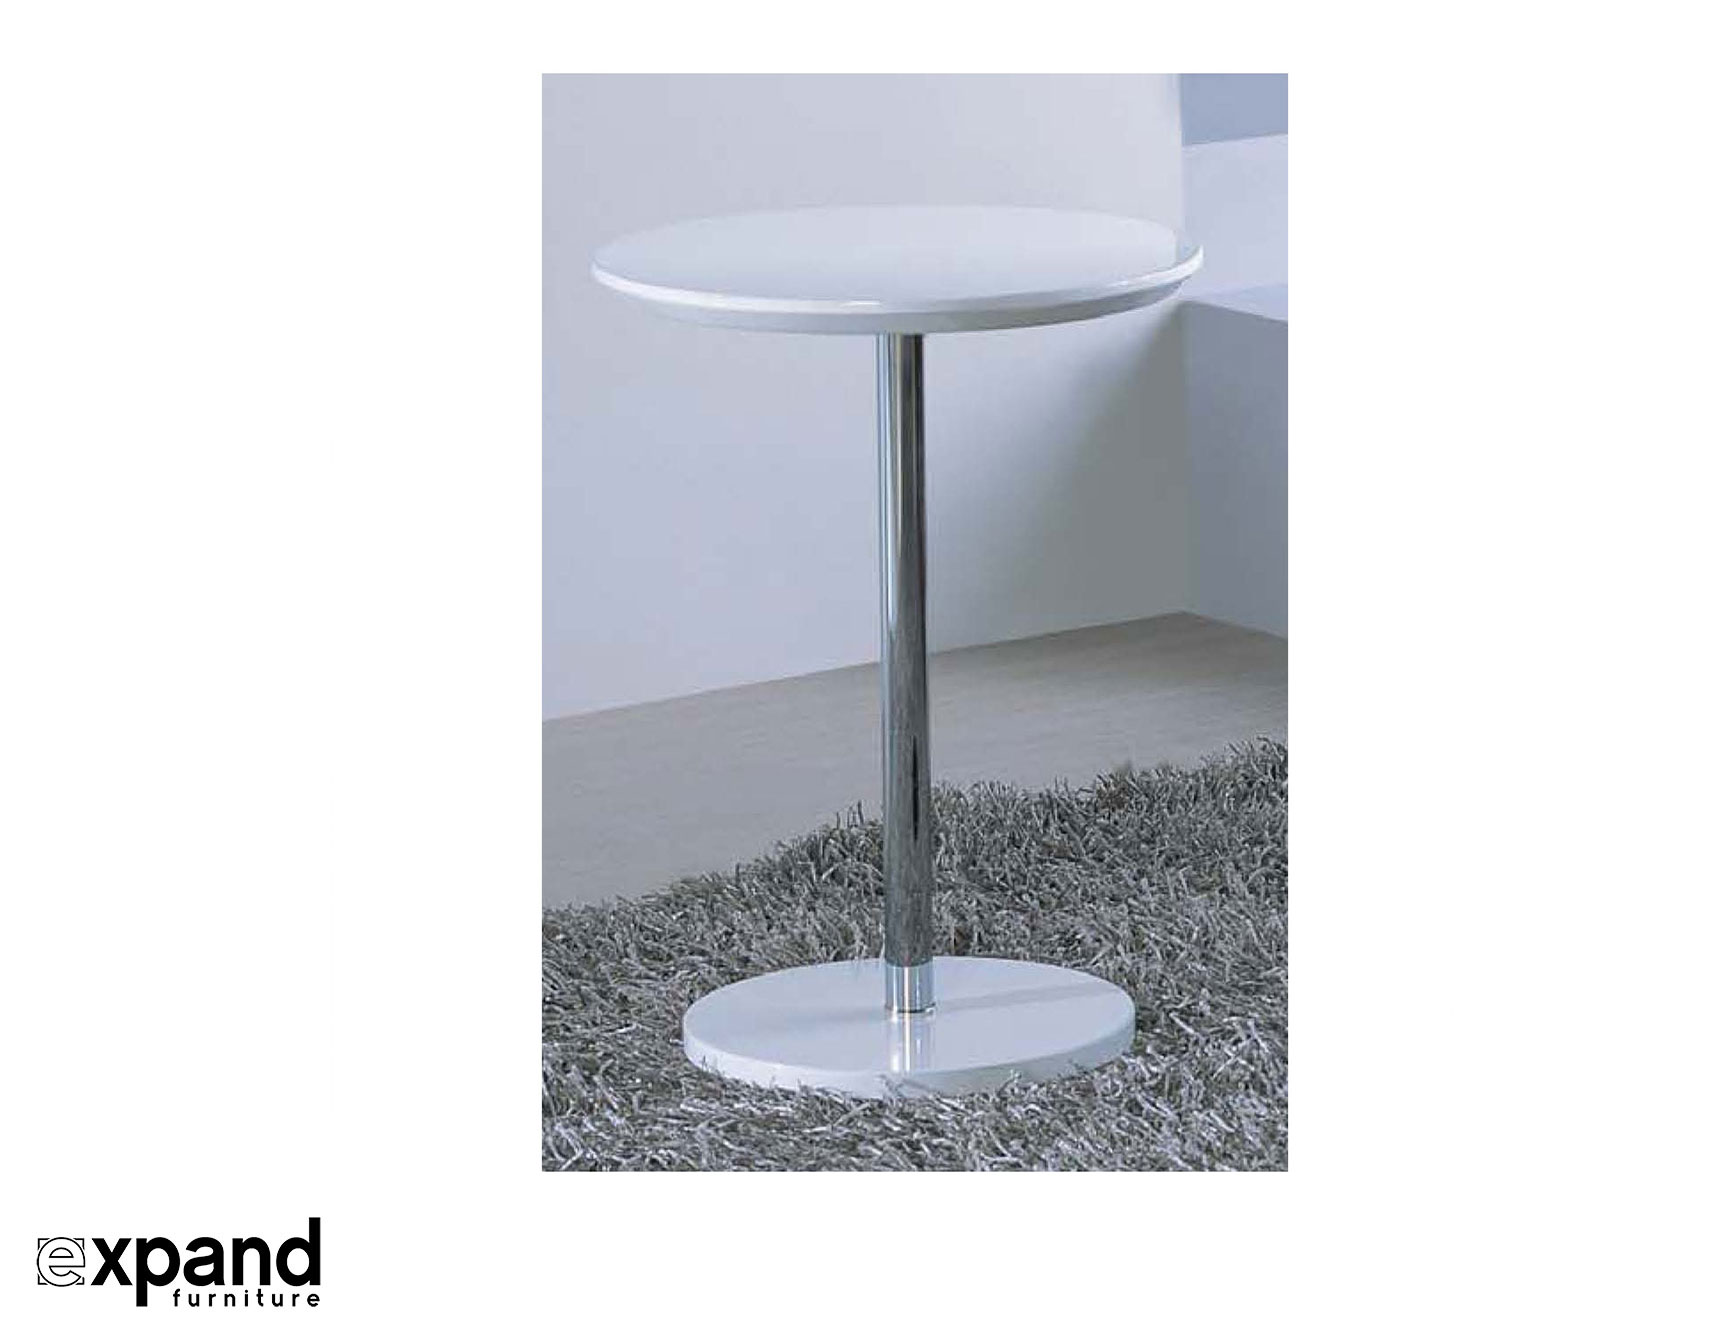 modern furniture side table. minima-side-table-affordable-modern-furniture. prev modern furniture side table r